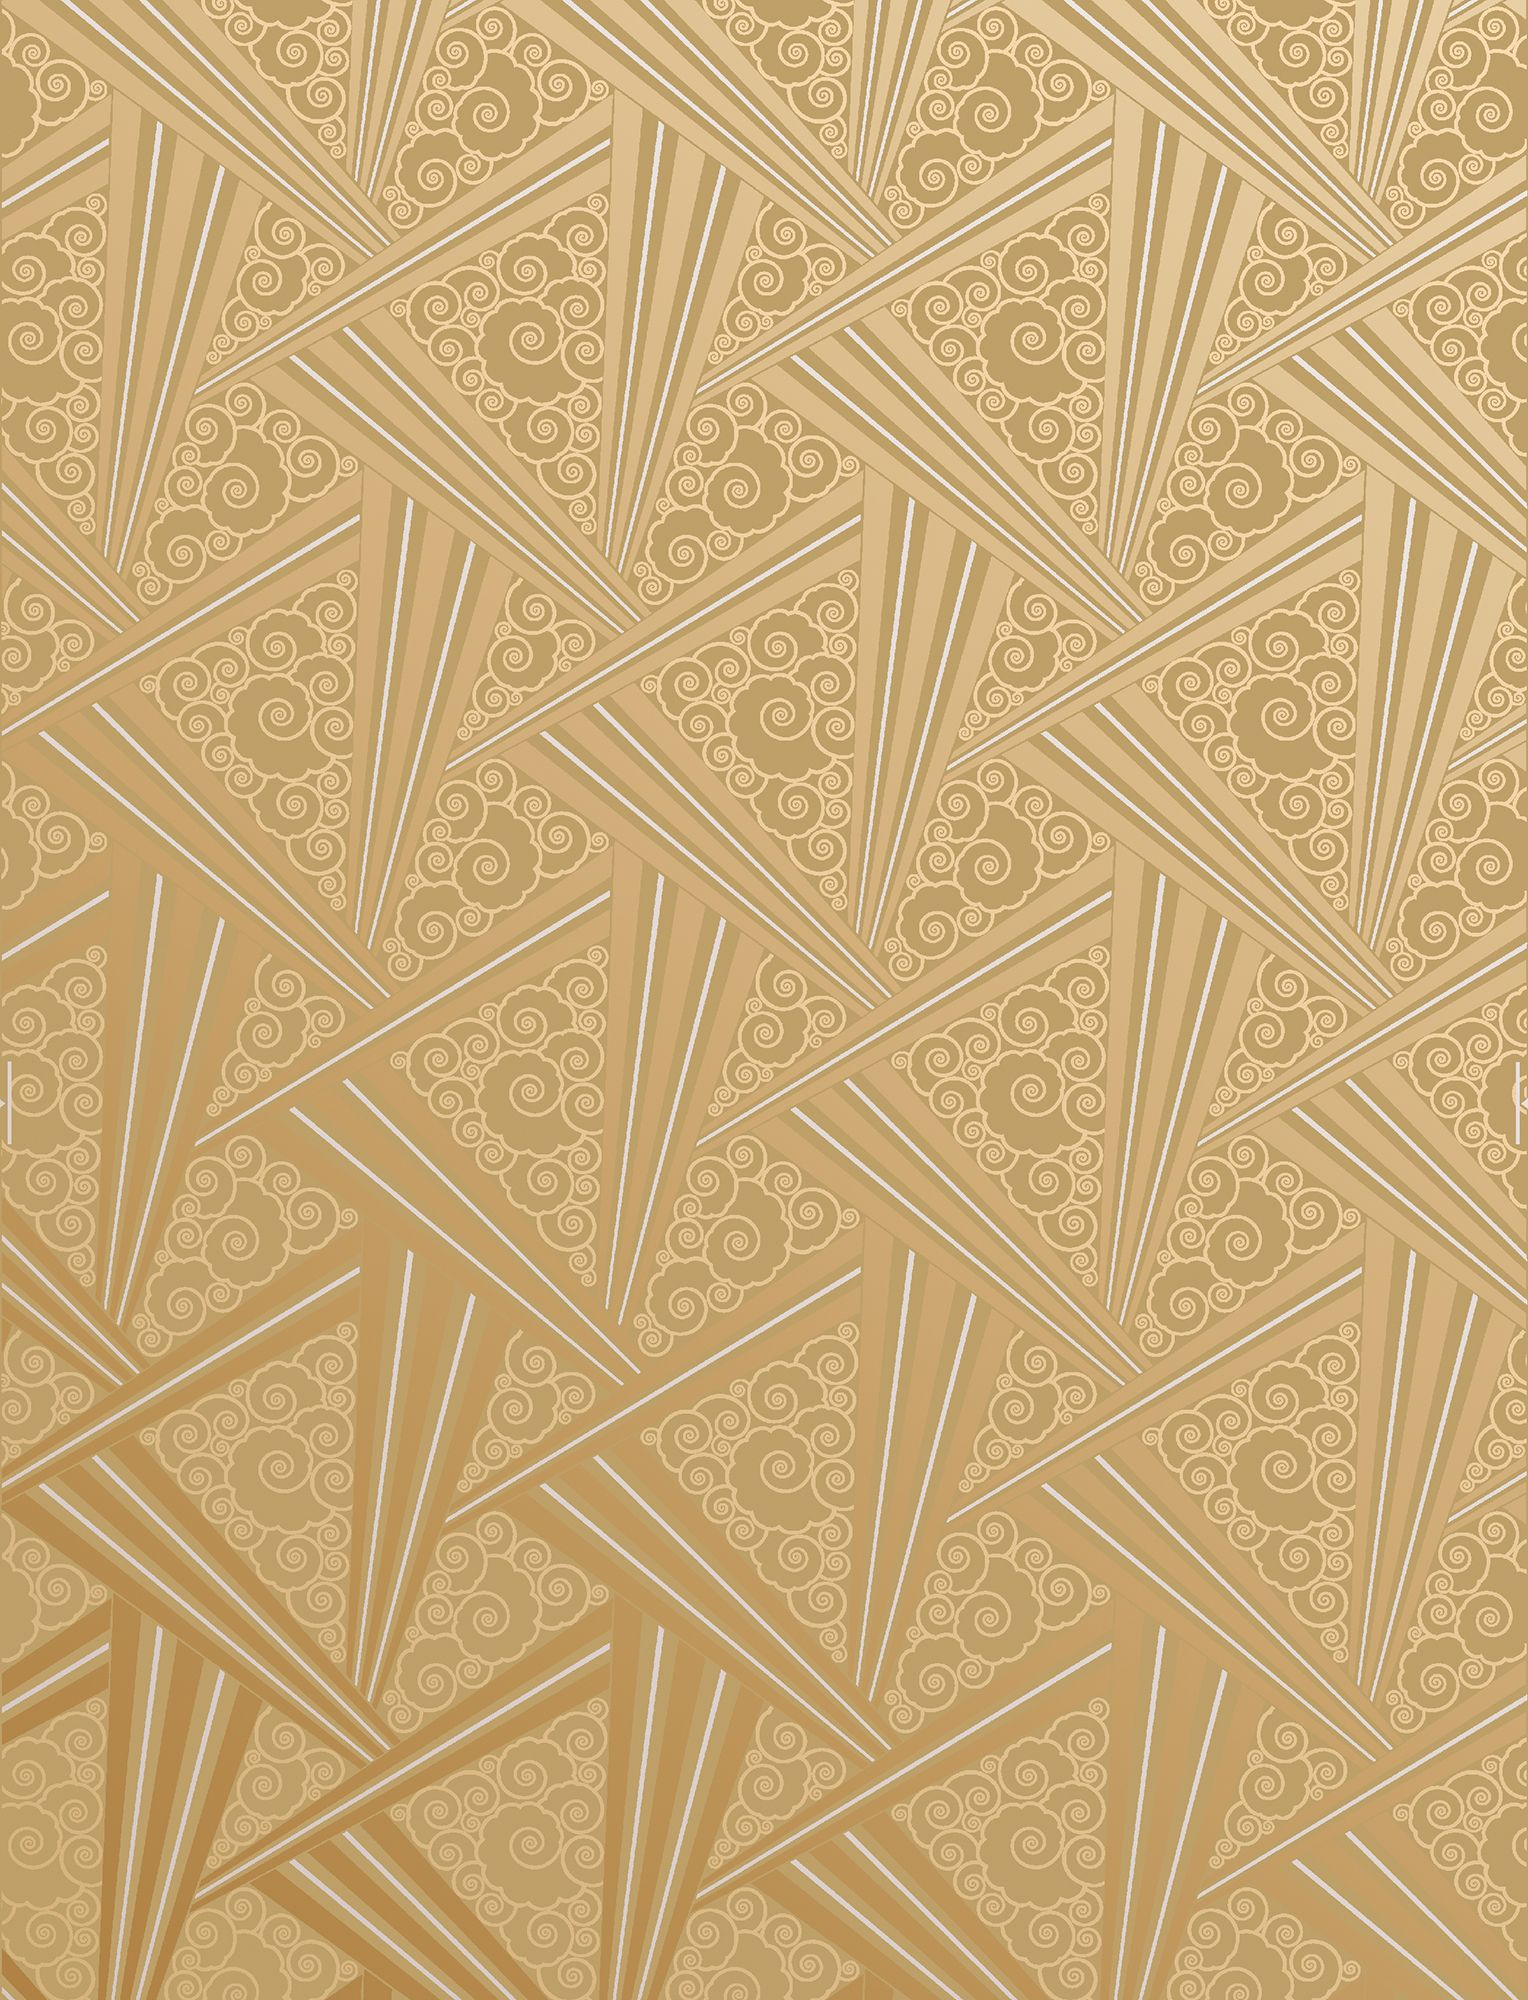 Connu 18 Art Deco Wallpaper Ideas - Decorating with 1920s Art Deco Wall  SL02